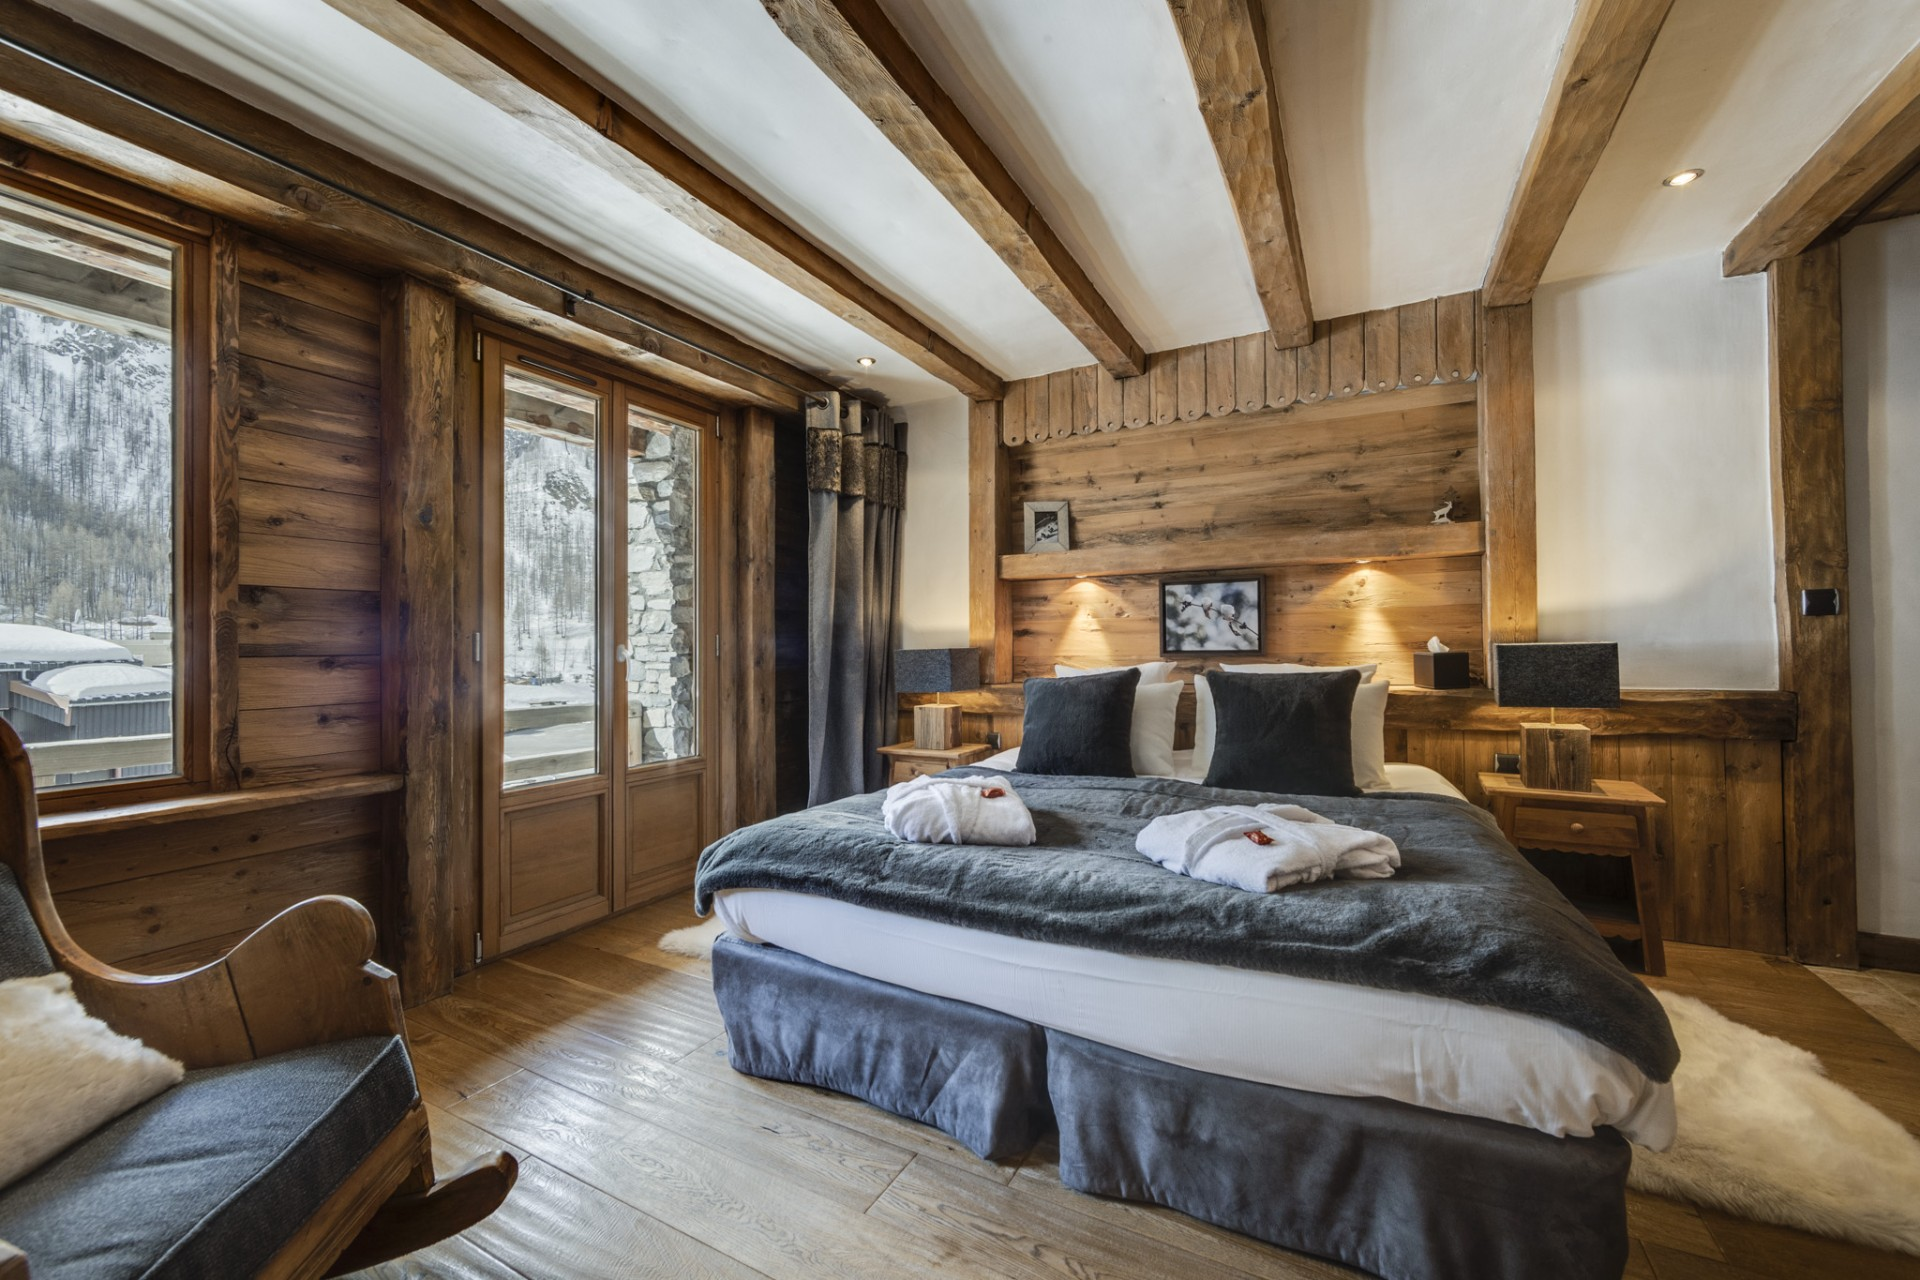 Val D'Isère Location Chalet Luxe Vonsanite Chambre 6